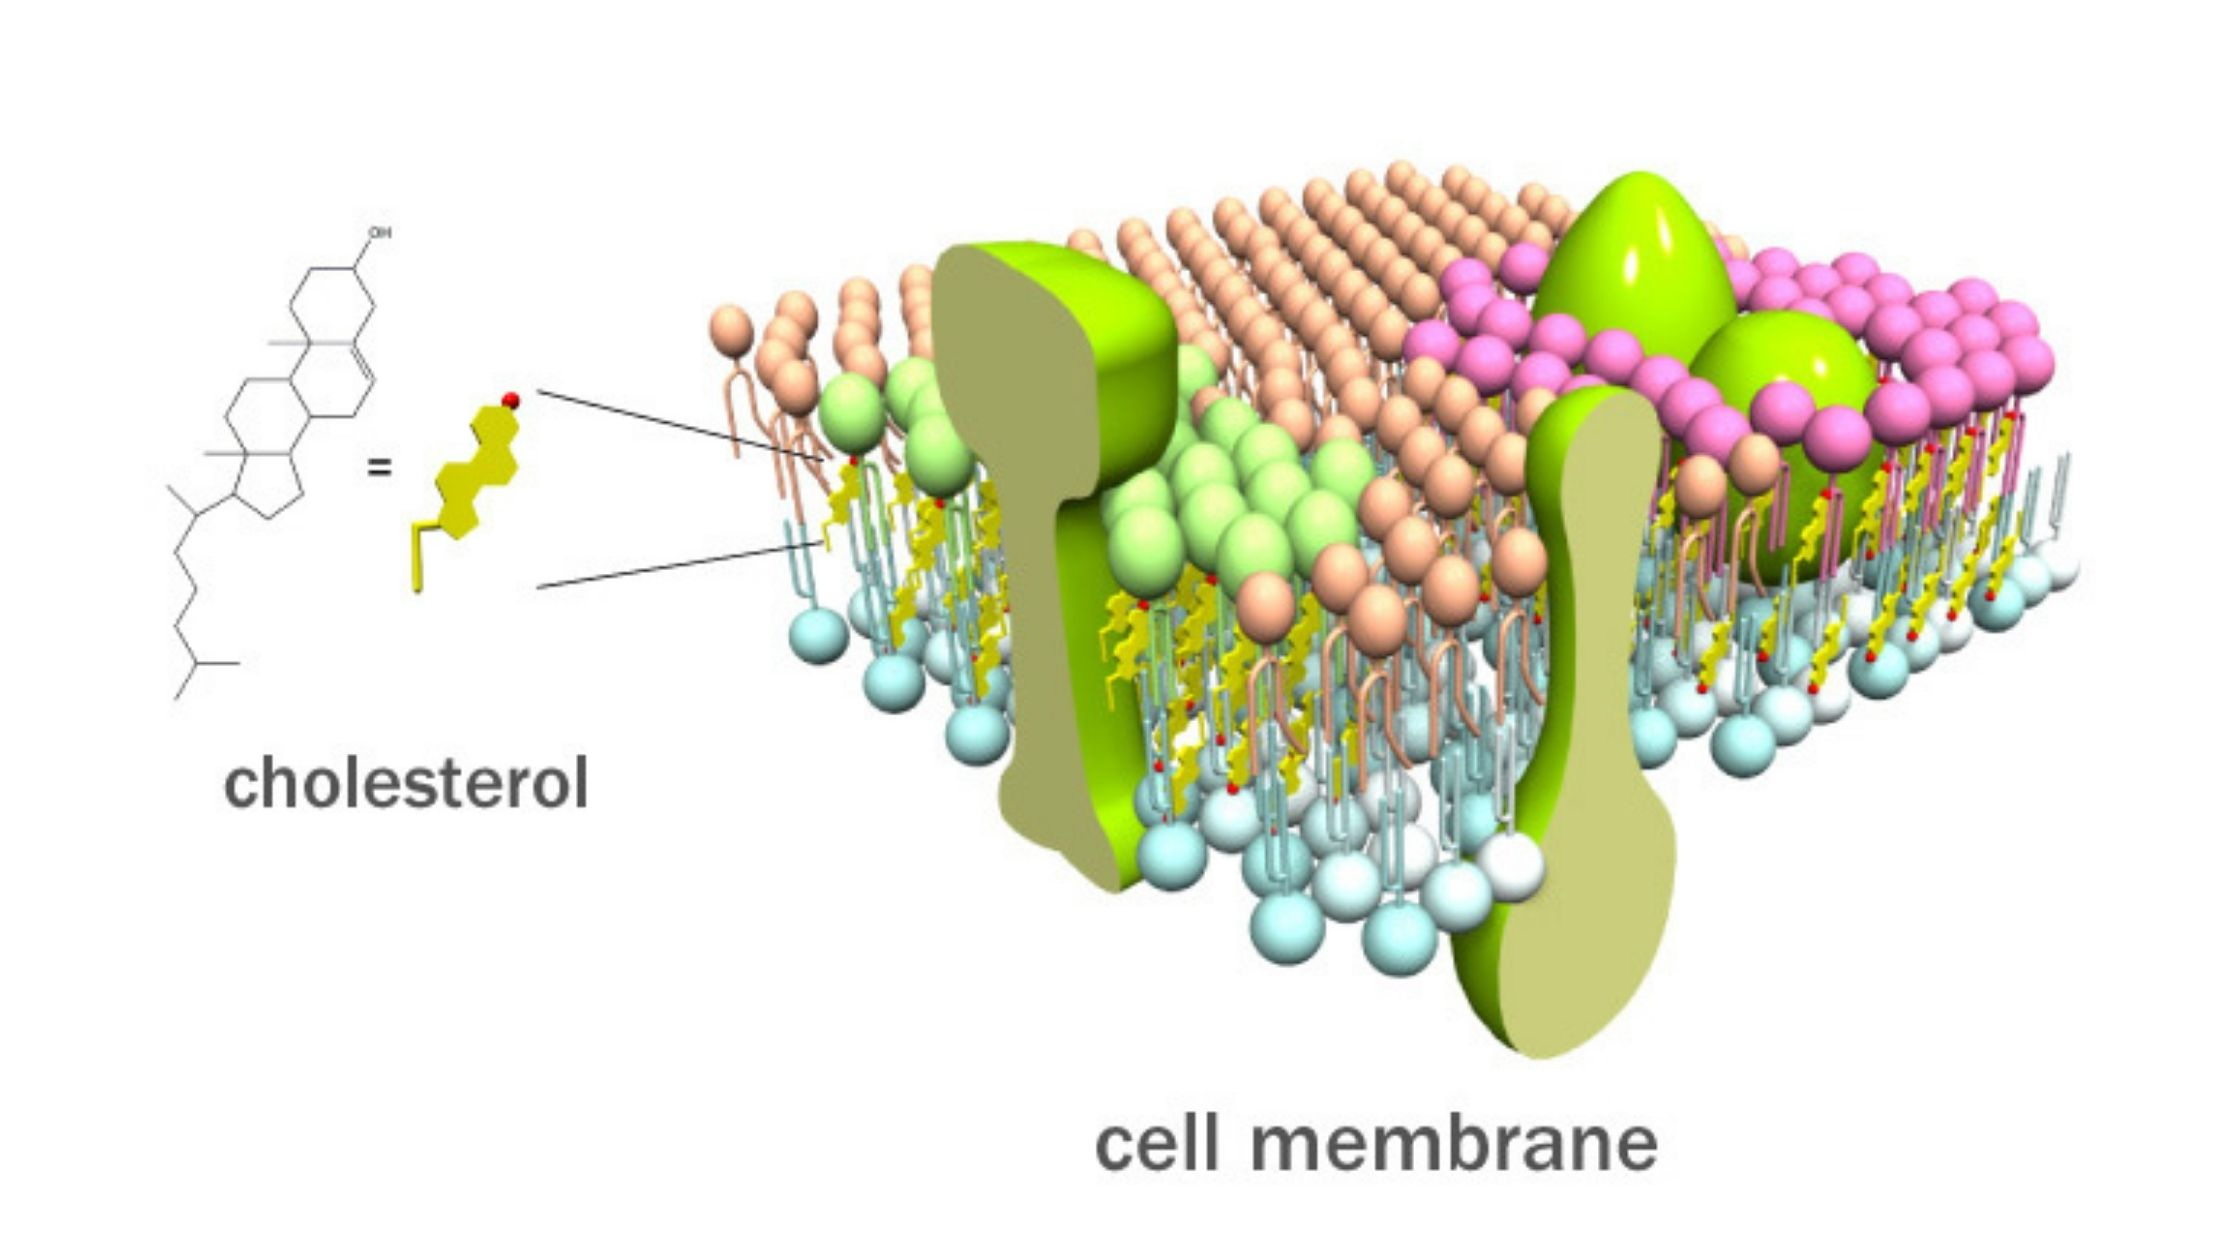 How does Cholesterol Affect the membrane?